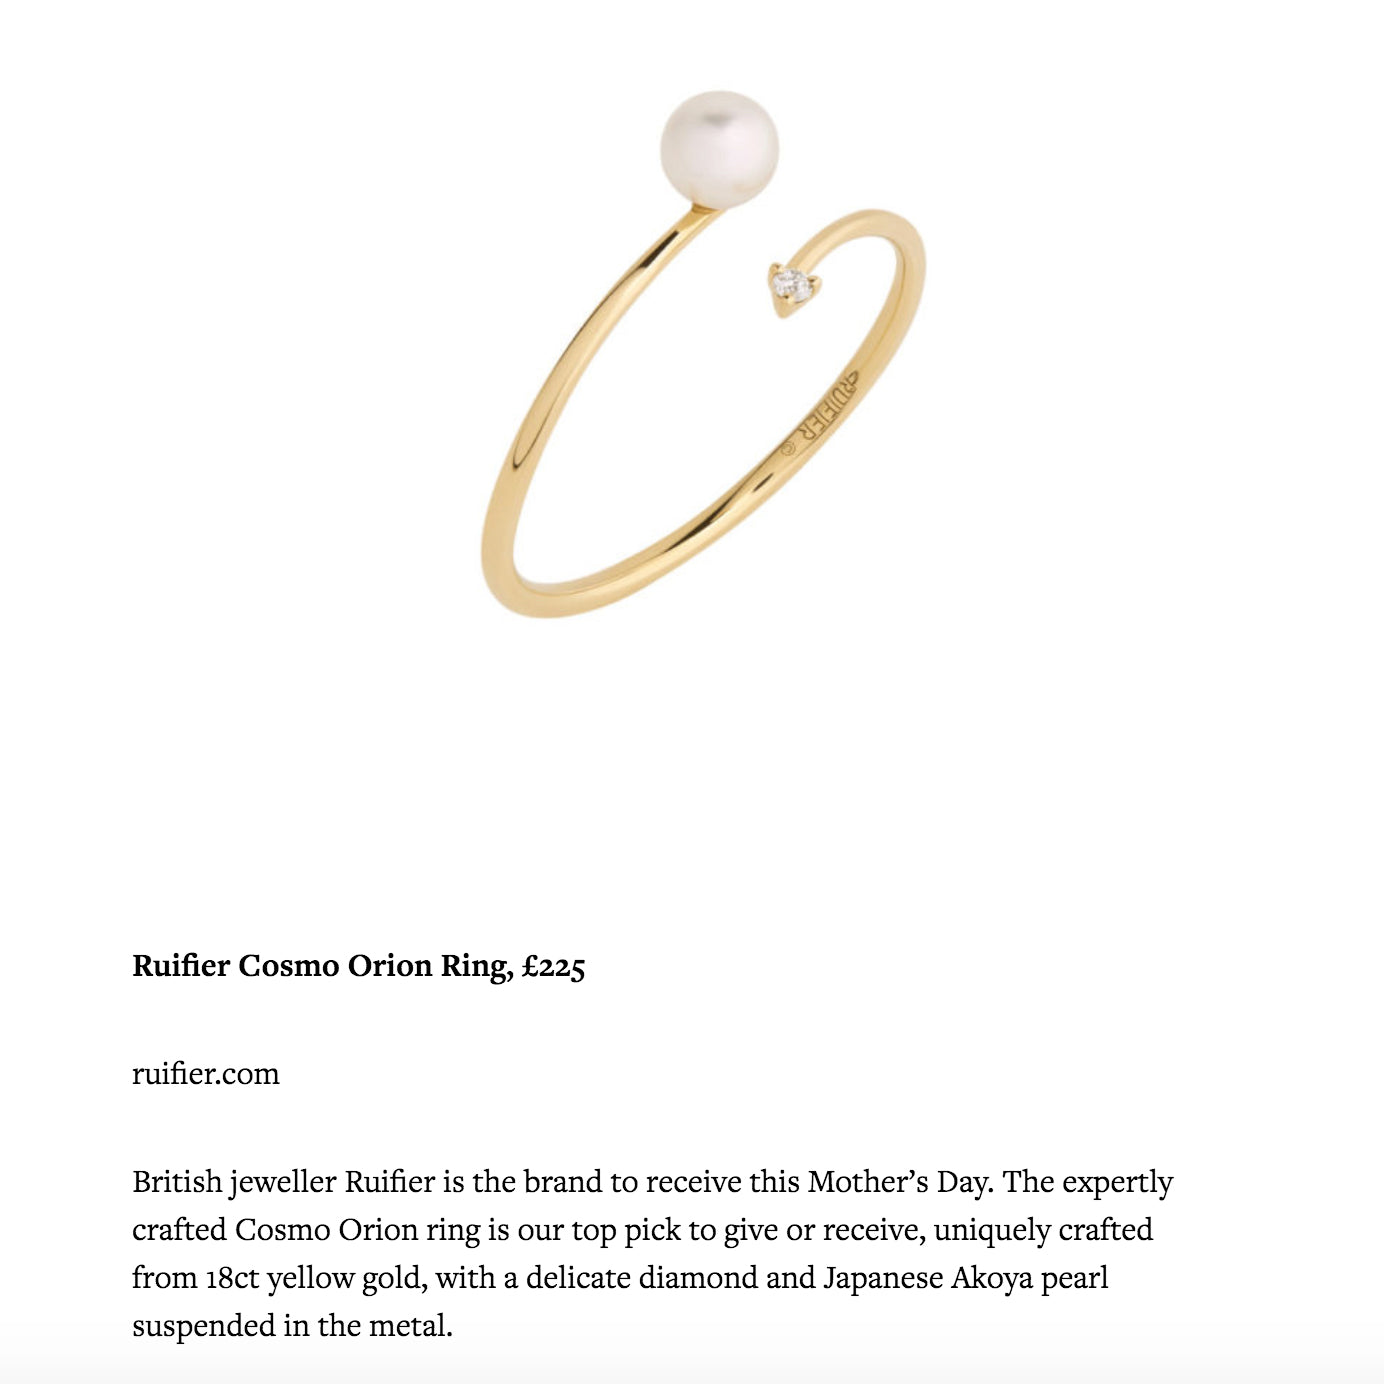 RUIFIER Cosmo Orion Ring